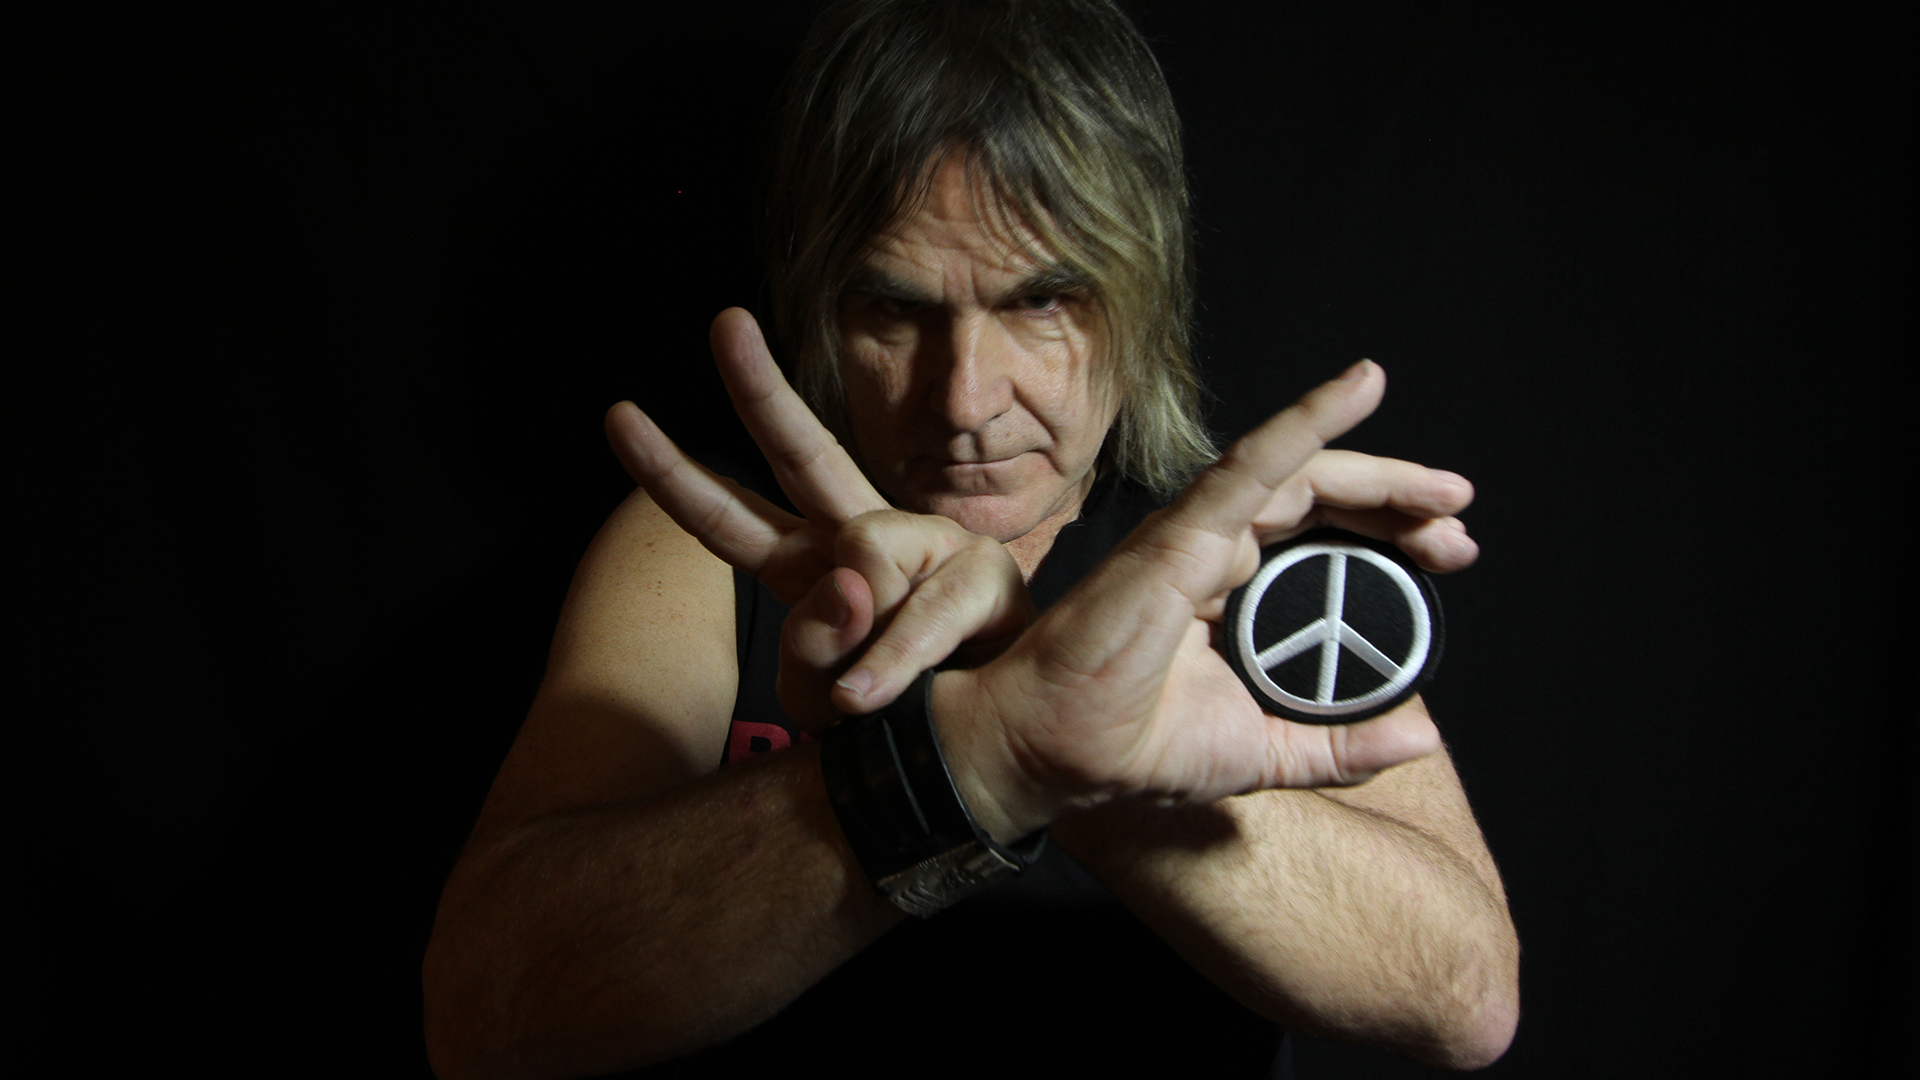 mike peters peace symbol hero